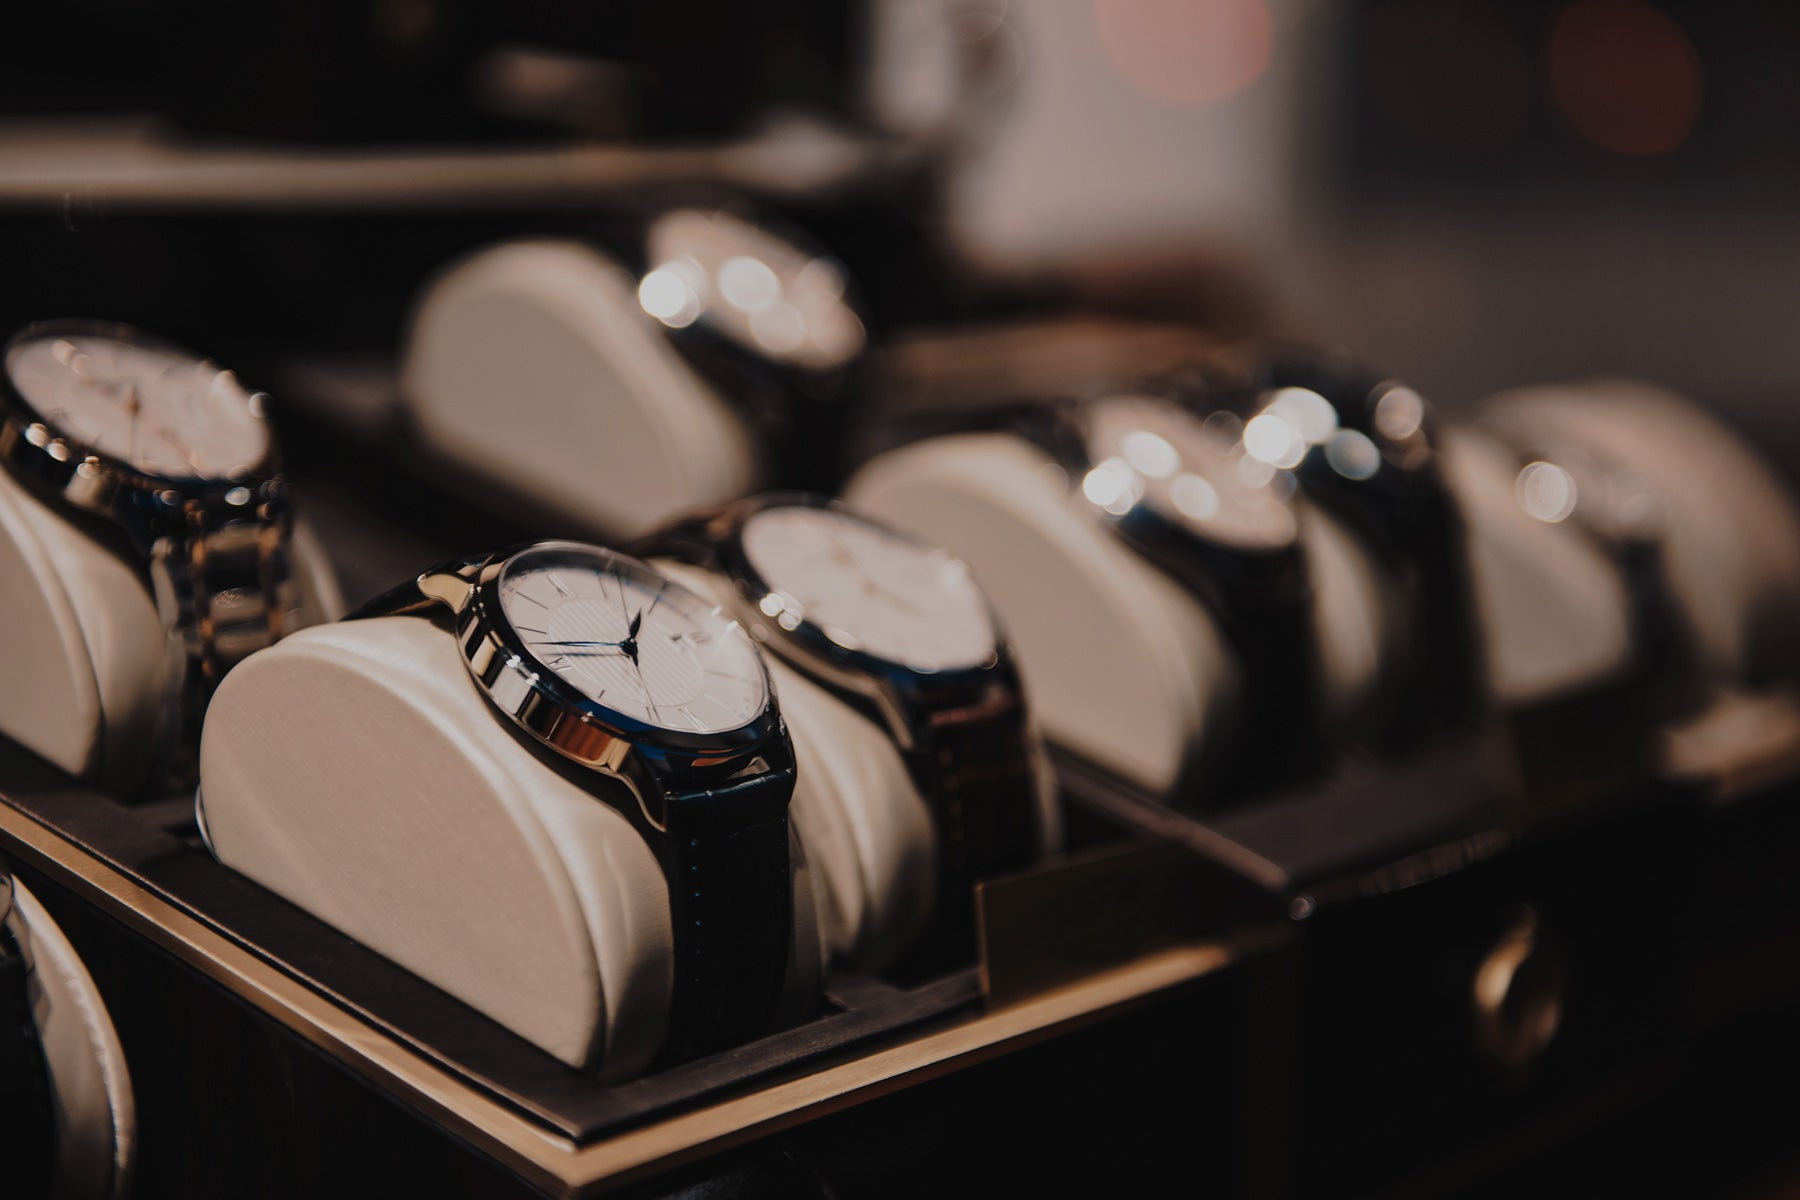 Men's Watches by The Black Bow Jewelry Company